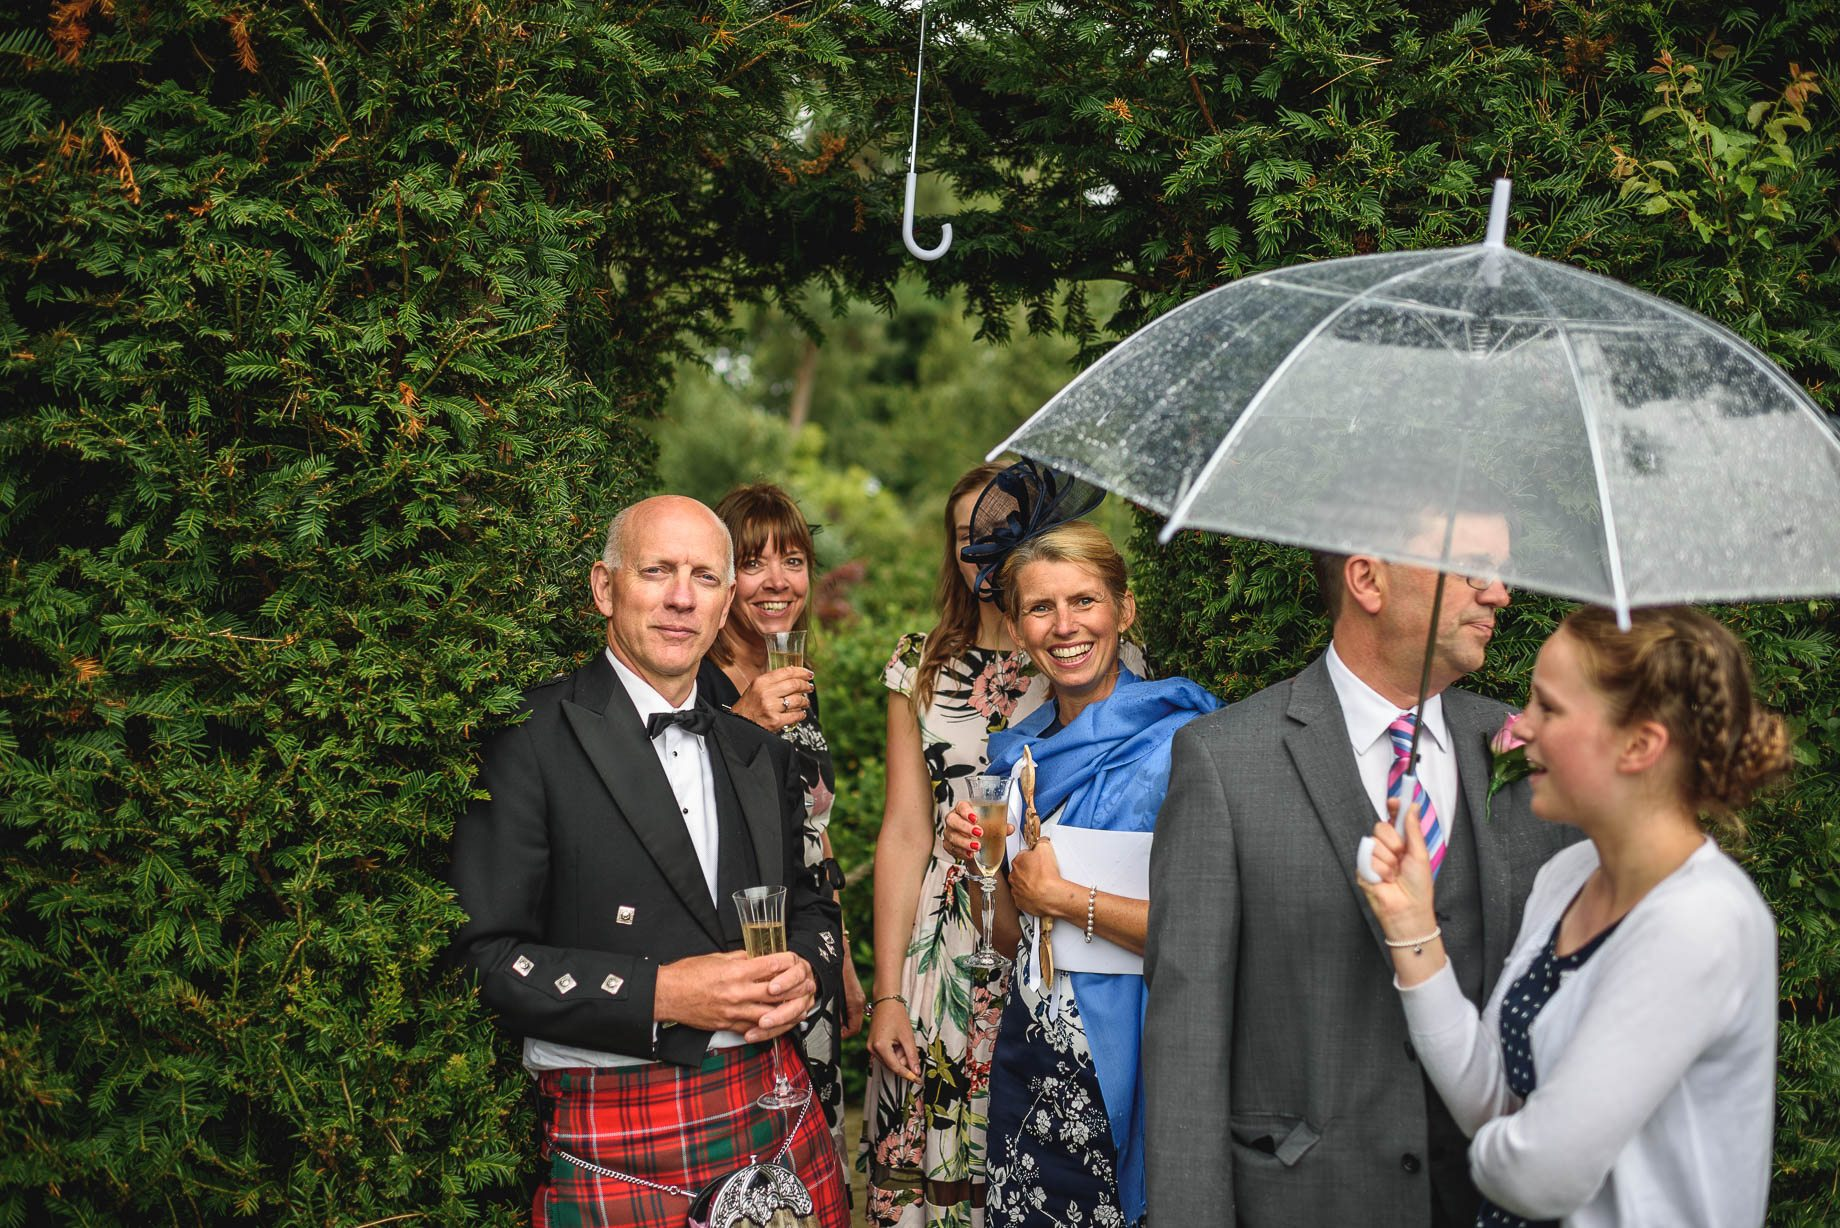 surrey-wedding-photography-guy-collier-photography-claire-and-tom-141-of-227